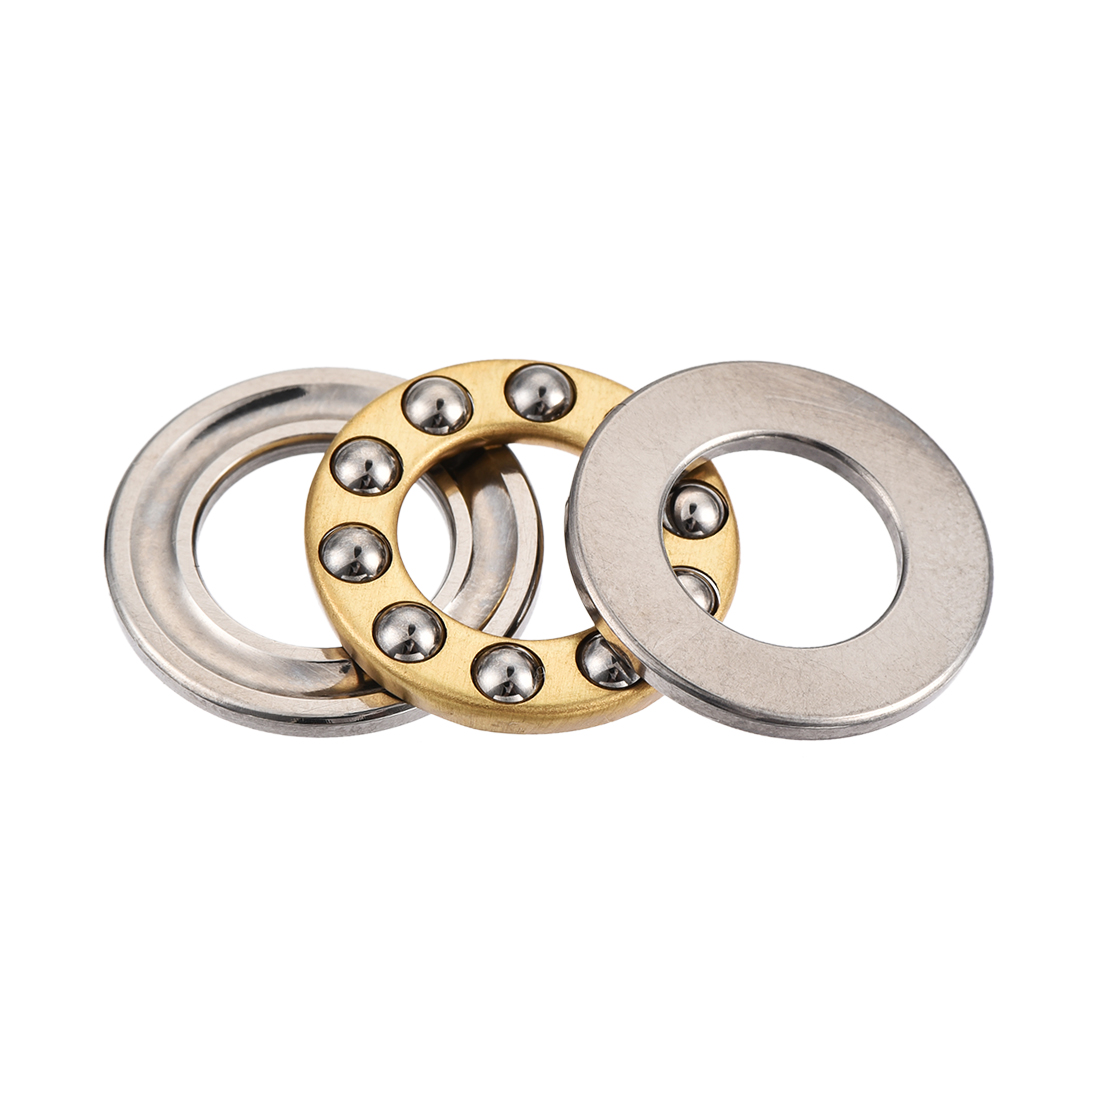 18mm x 10mm x 5.5mm Silver Tone Metal Ball Thrust Bearing